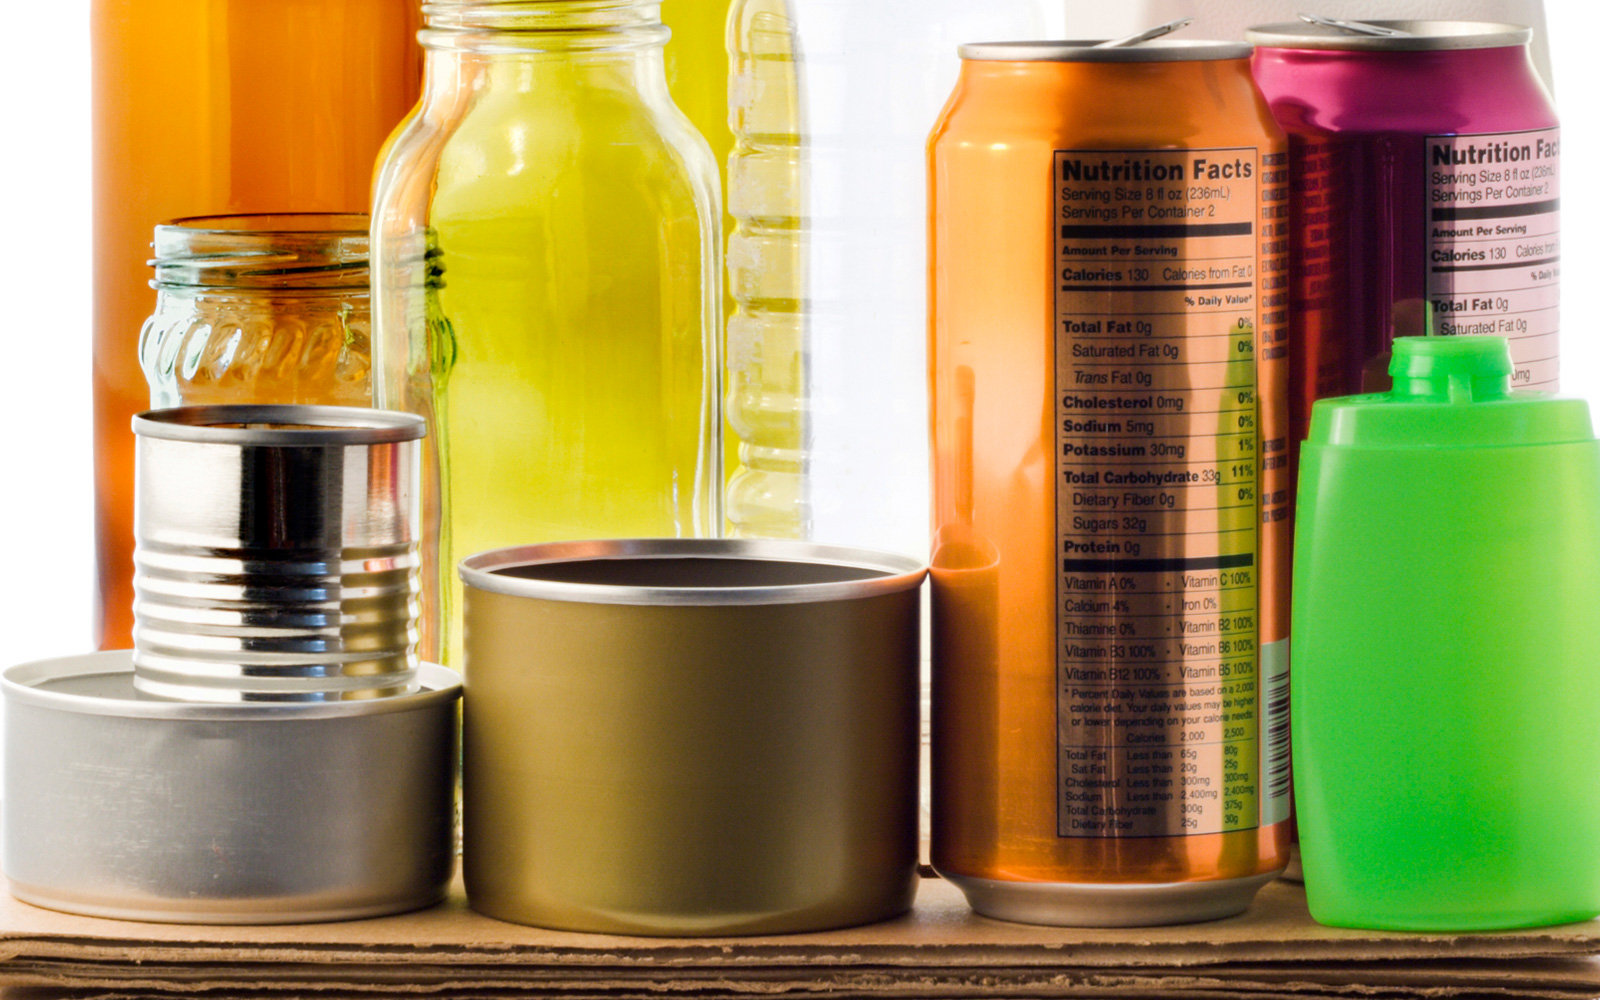 A colorful variety of different packaging types, including cans, glass jars, plastic bottles, and cardboard